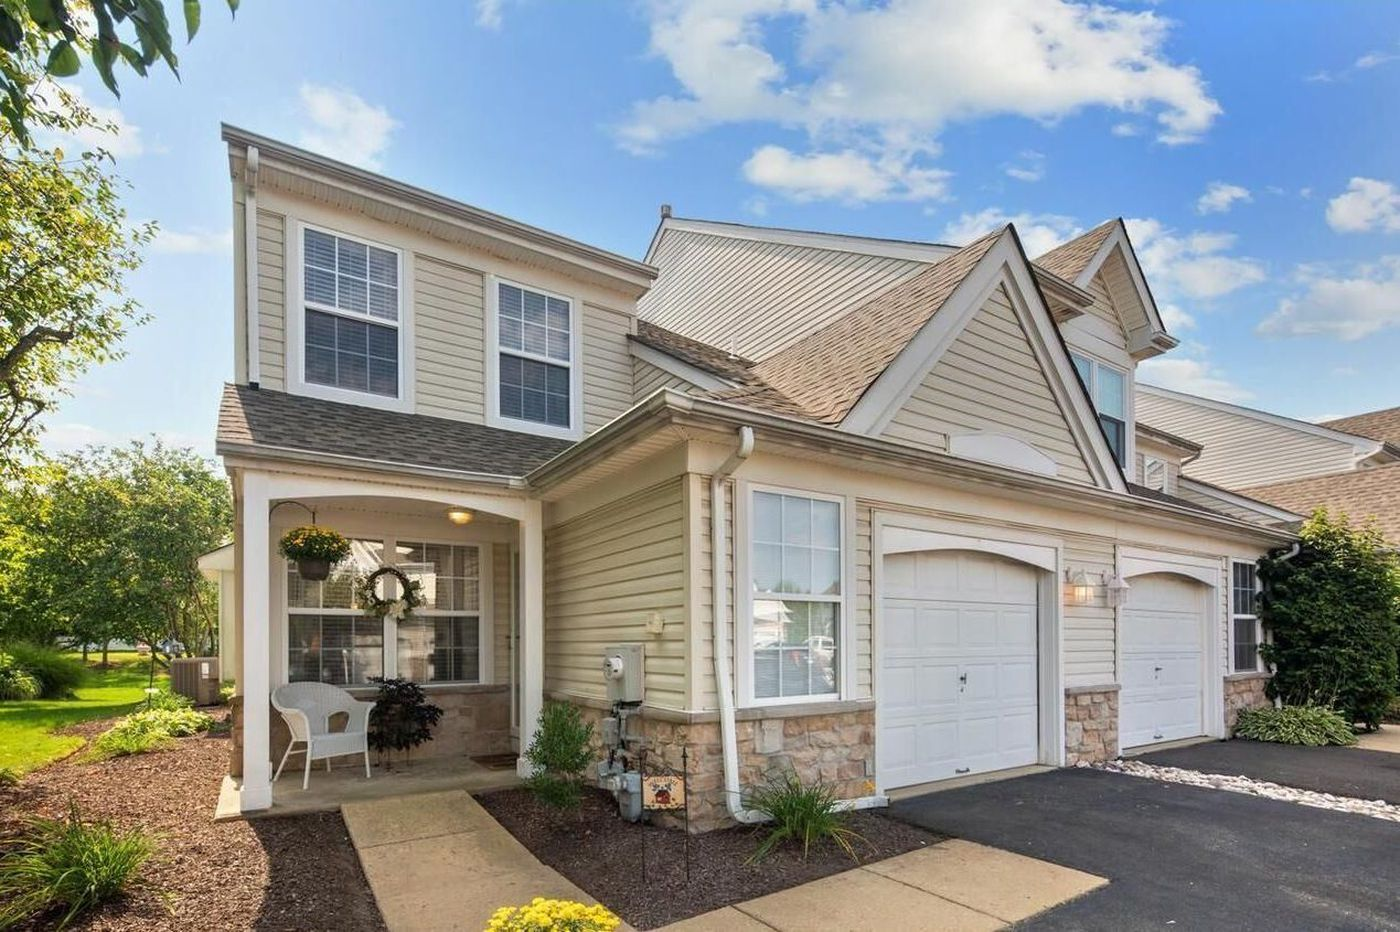 On the market: Bucks County townhouse for $300,000